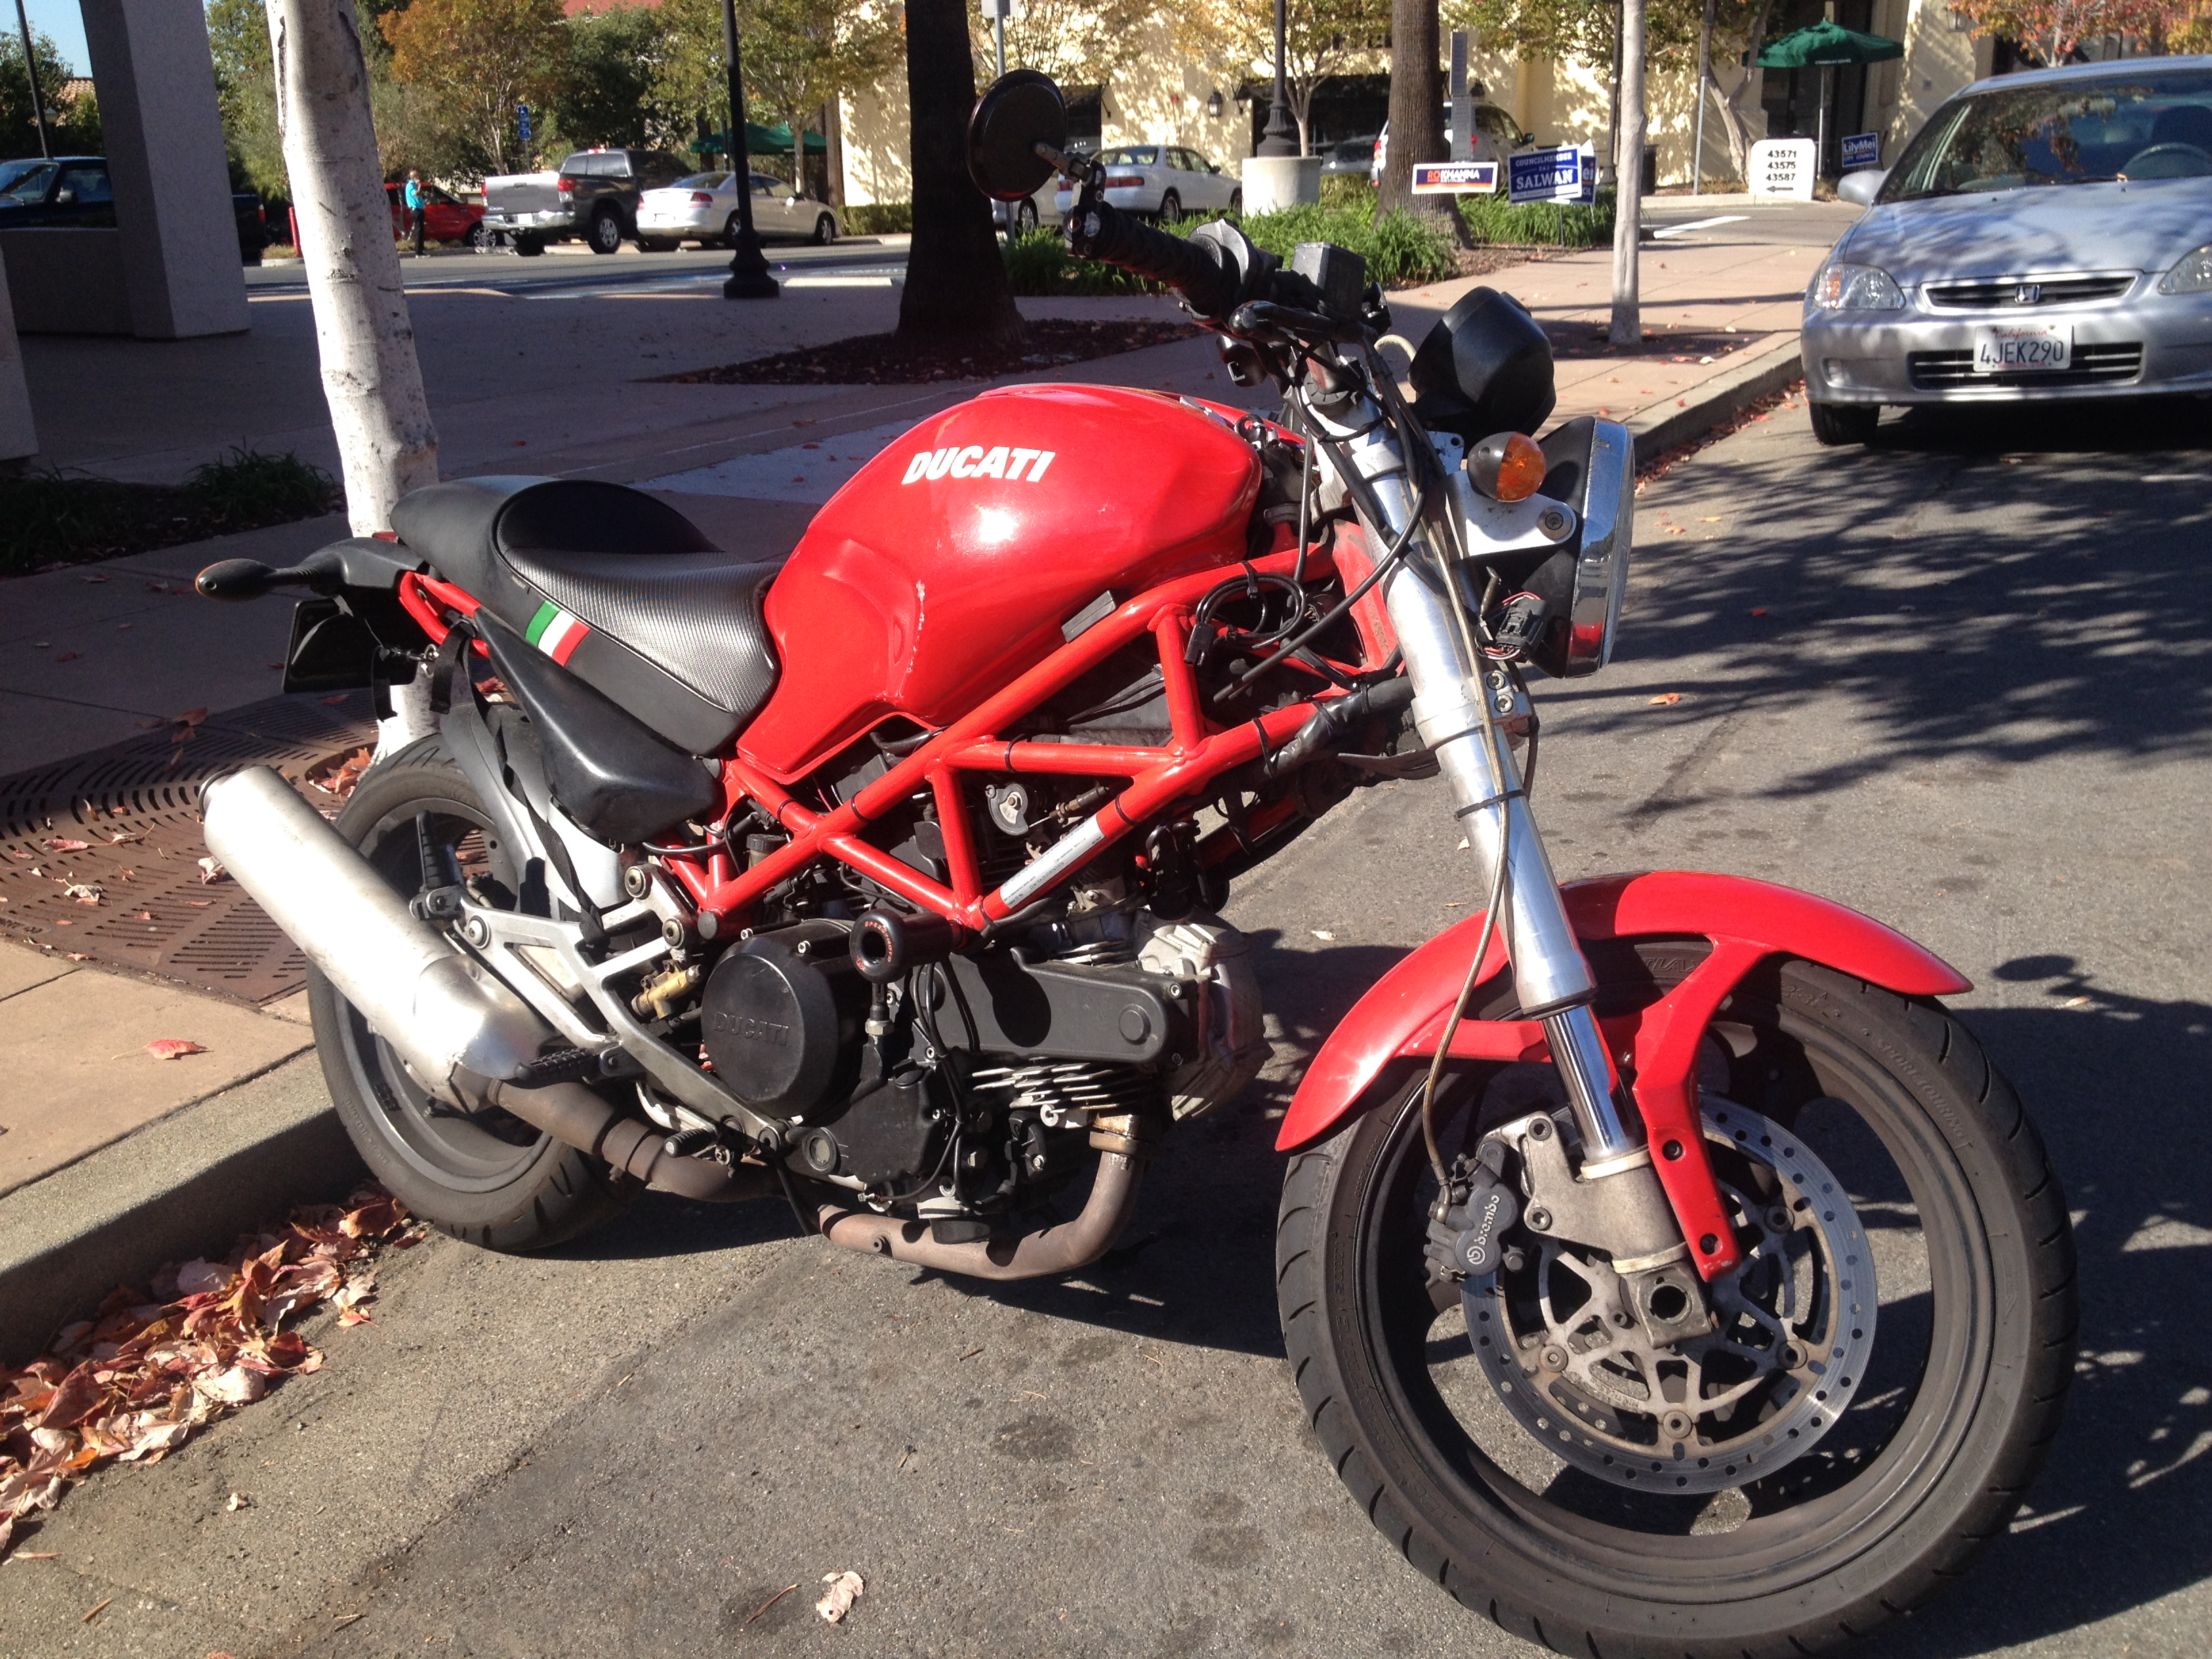 Ducati Monster 620 images #79102